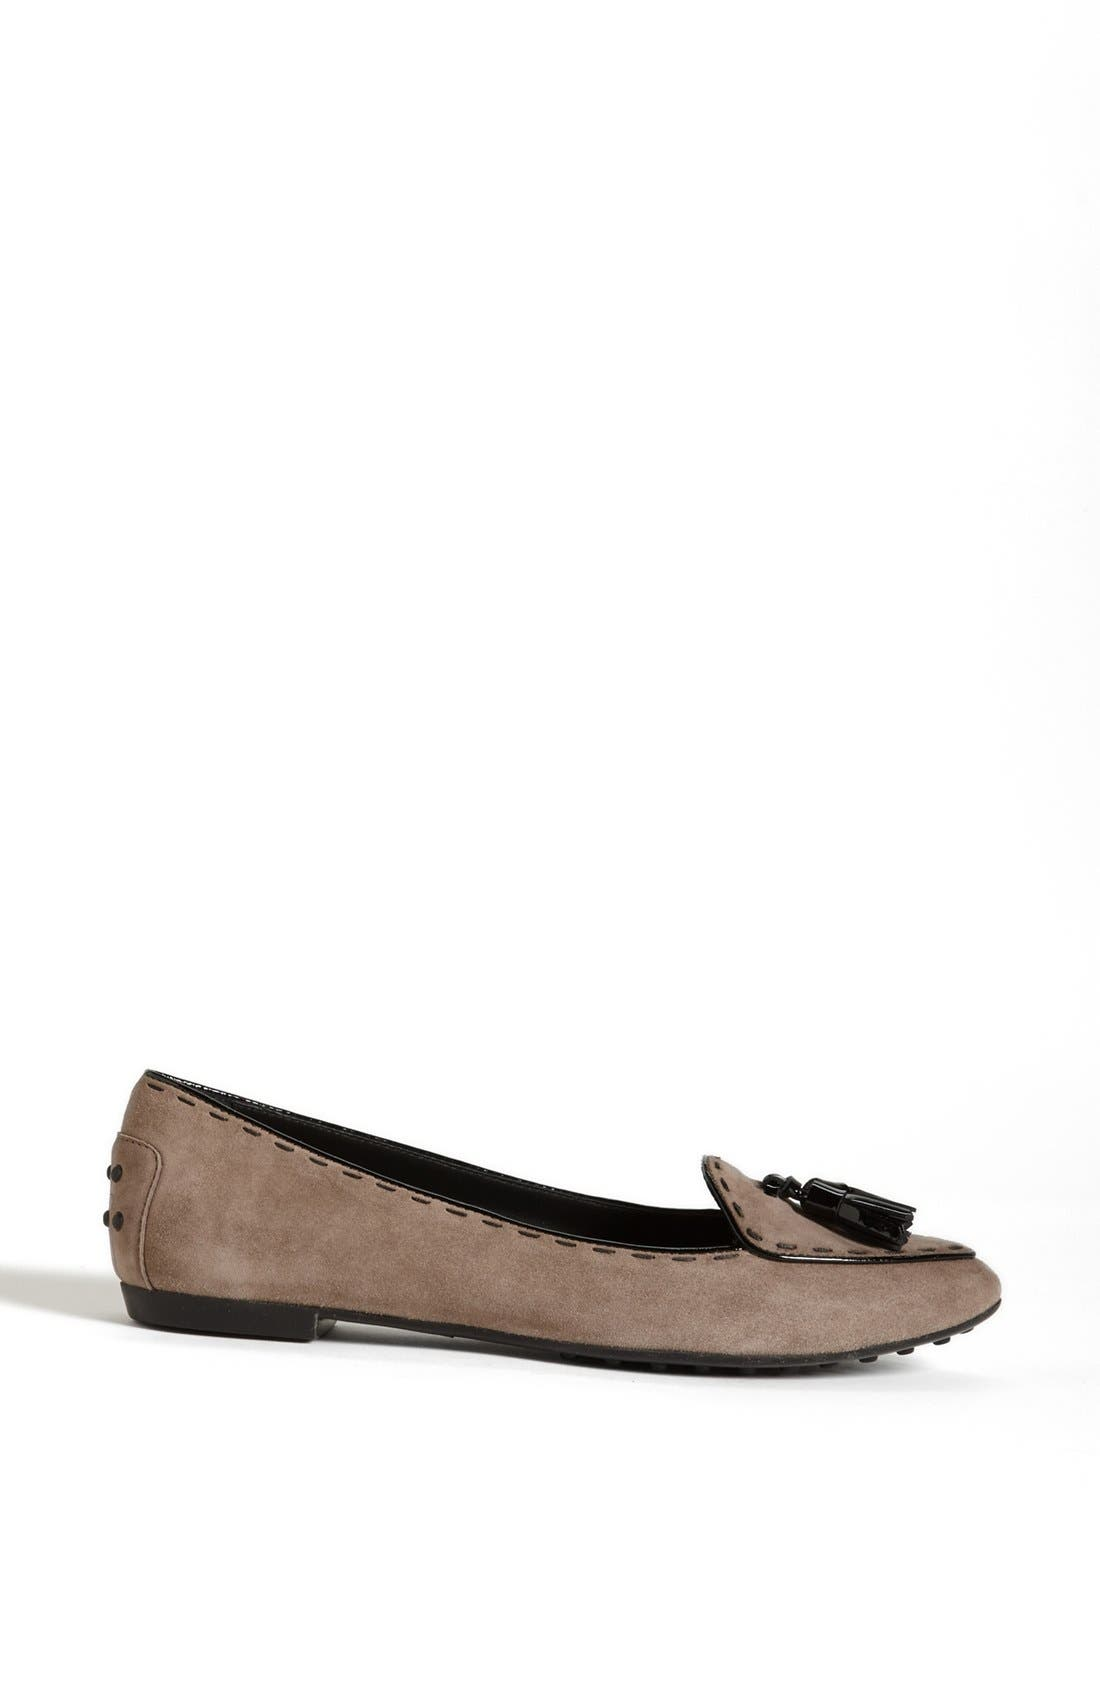 'Belgium' Ballet Flat,                             Alternate thumbnail 4, color,                             020